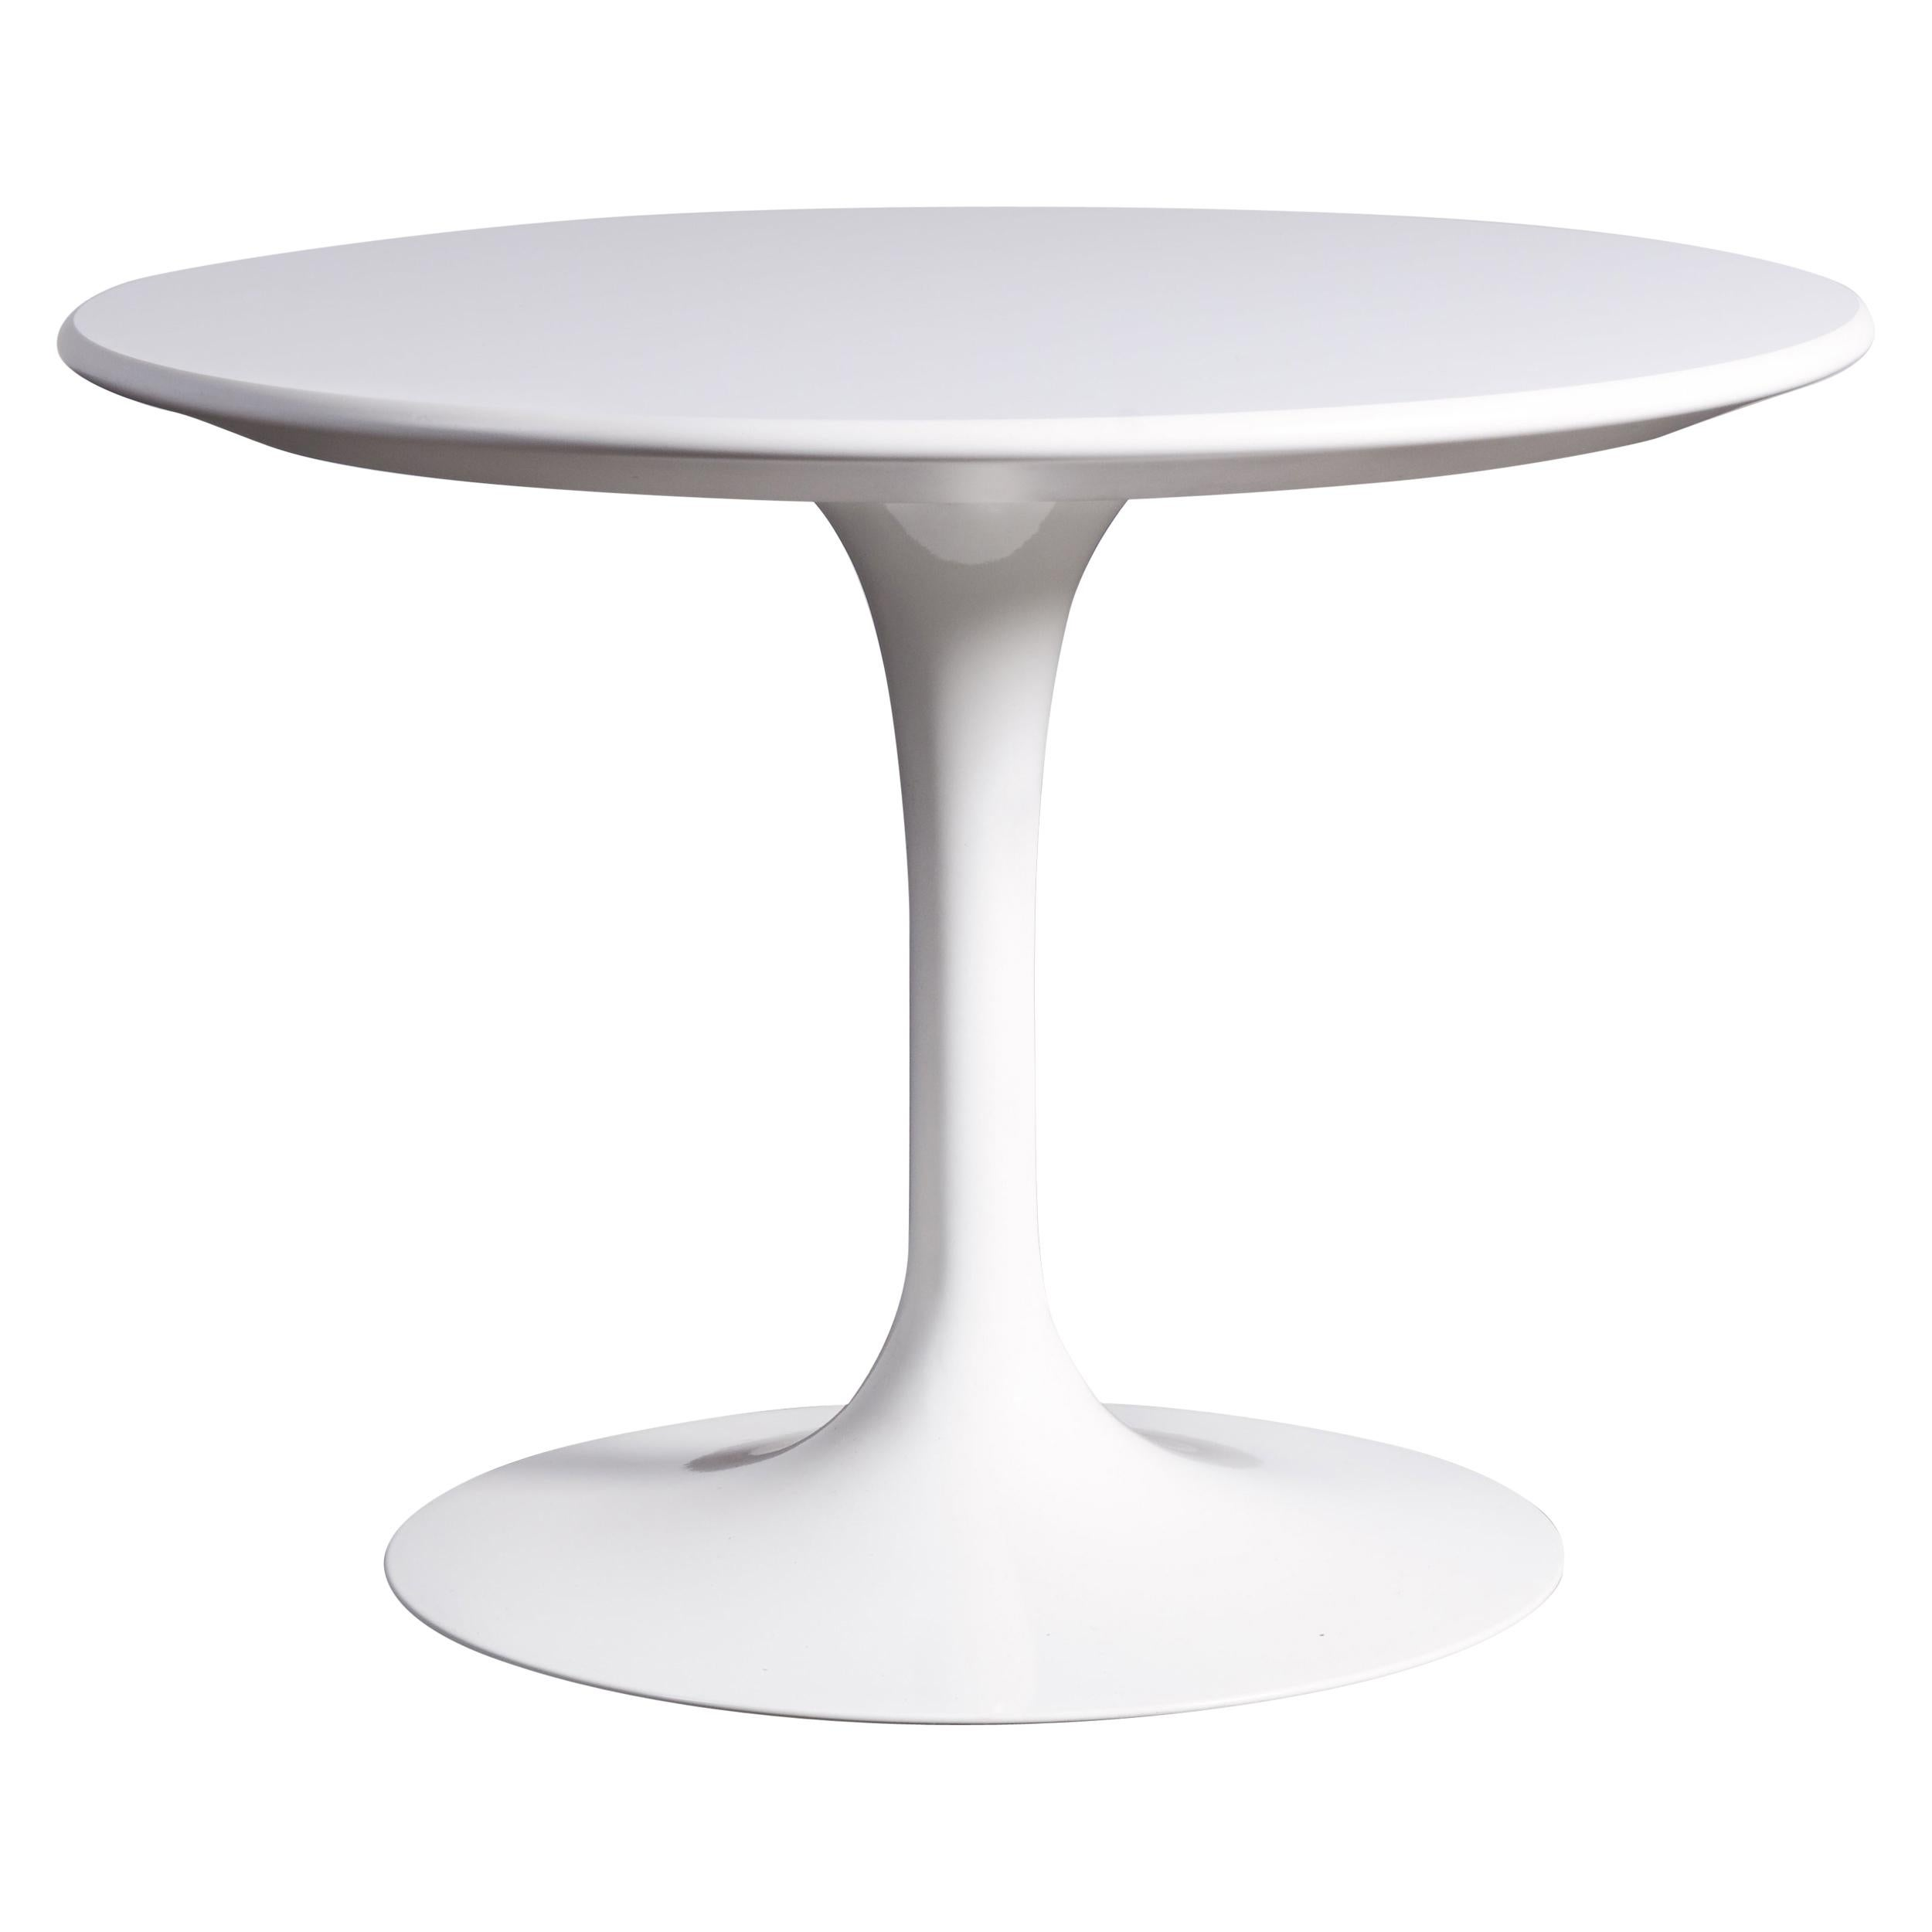 White Saarinen Tulip Side Table for Knoll, Rare Low Profile, Signed